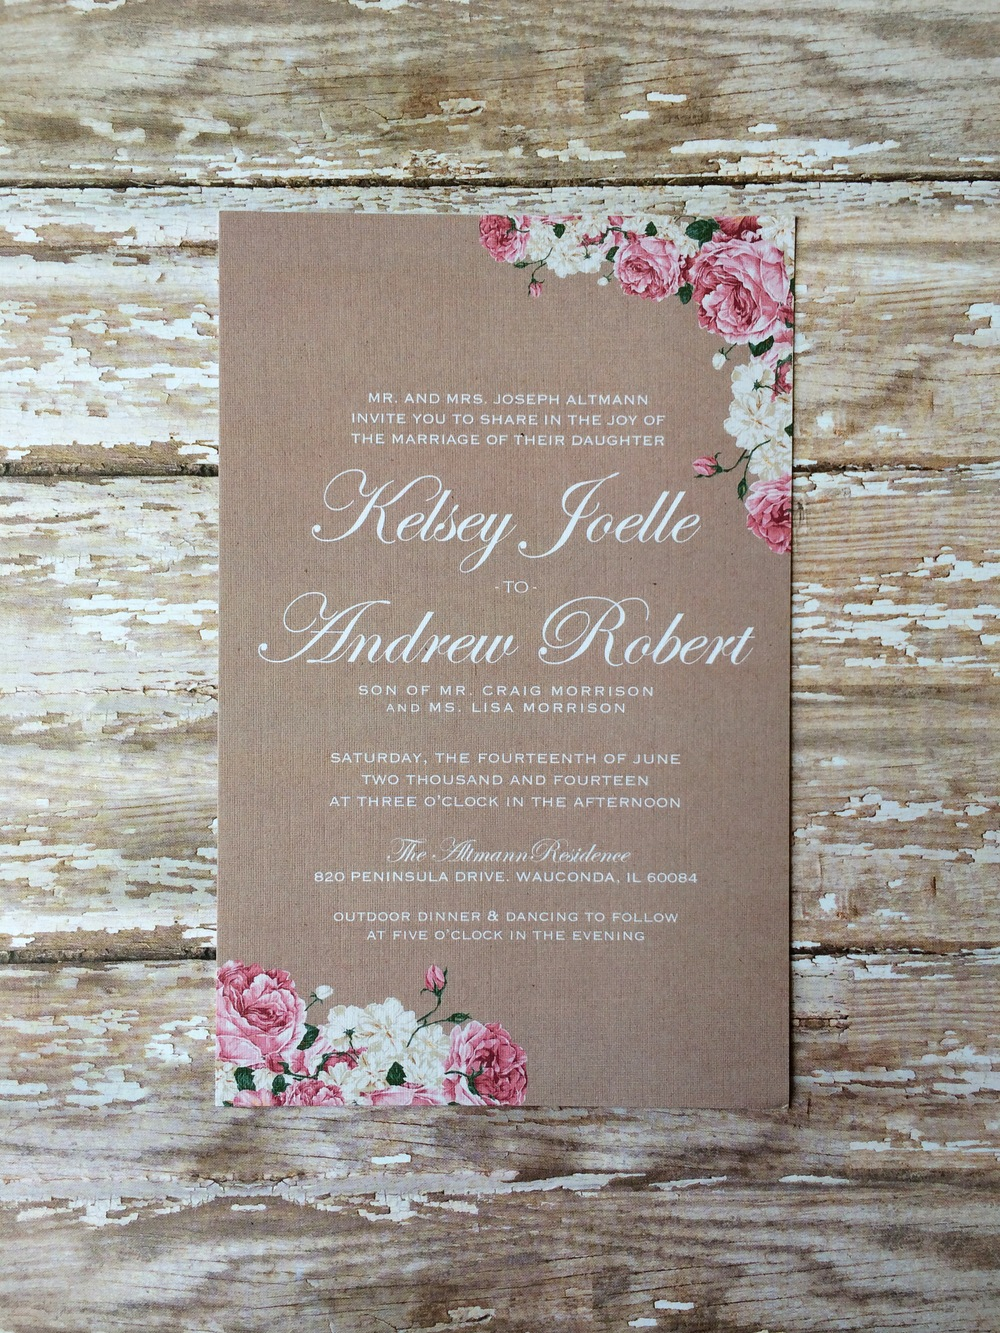 Bsaz Creates_Kelsey and Andrew Wedding Invite